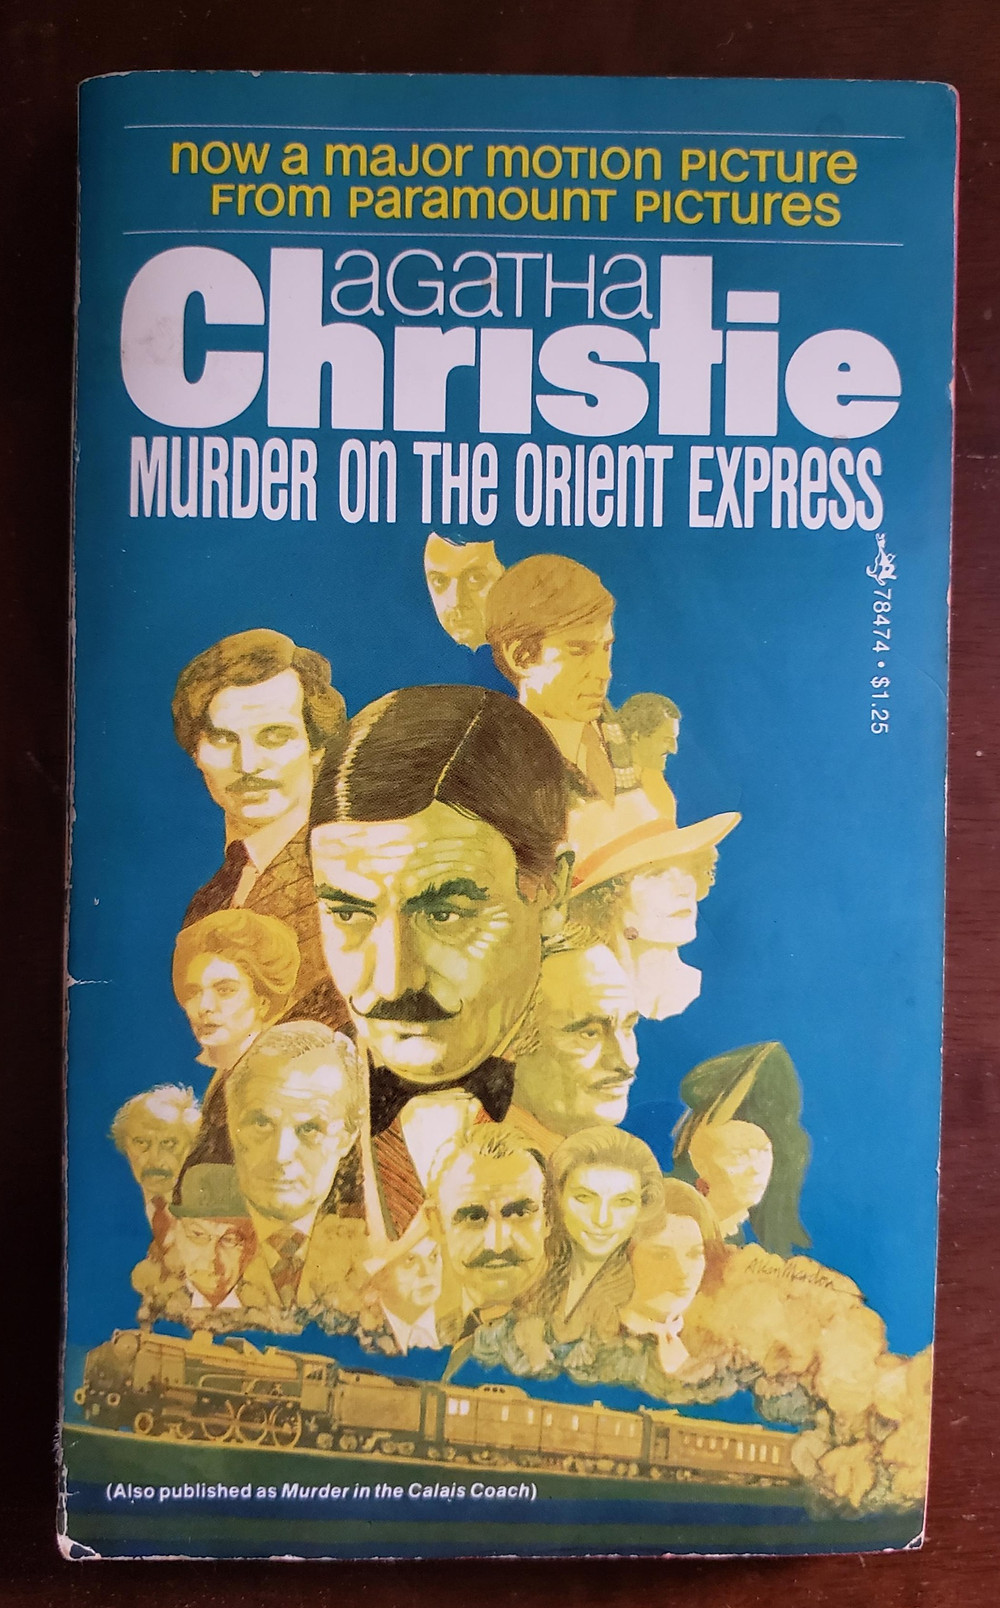 The front facing cover of the book Murder on the Orient Express by Agatha Christie.